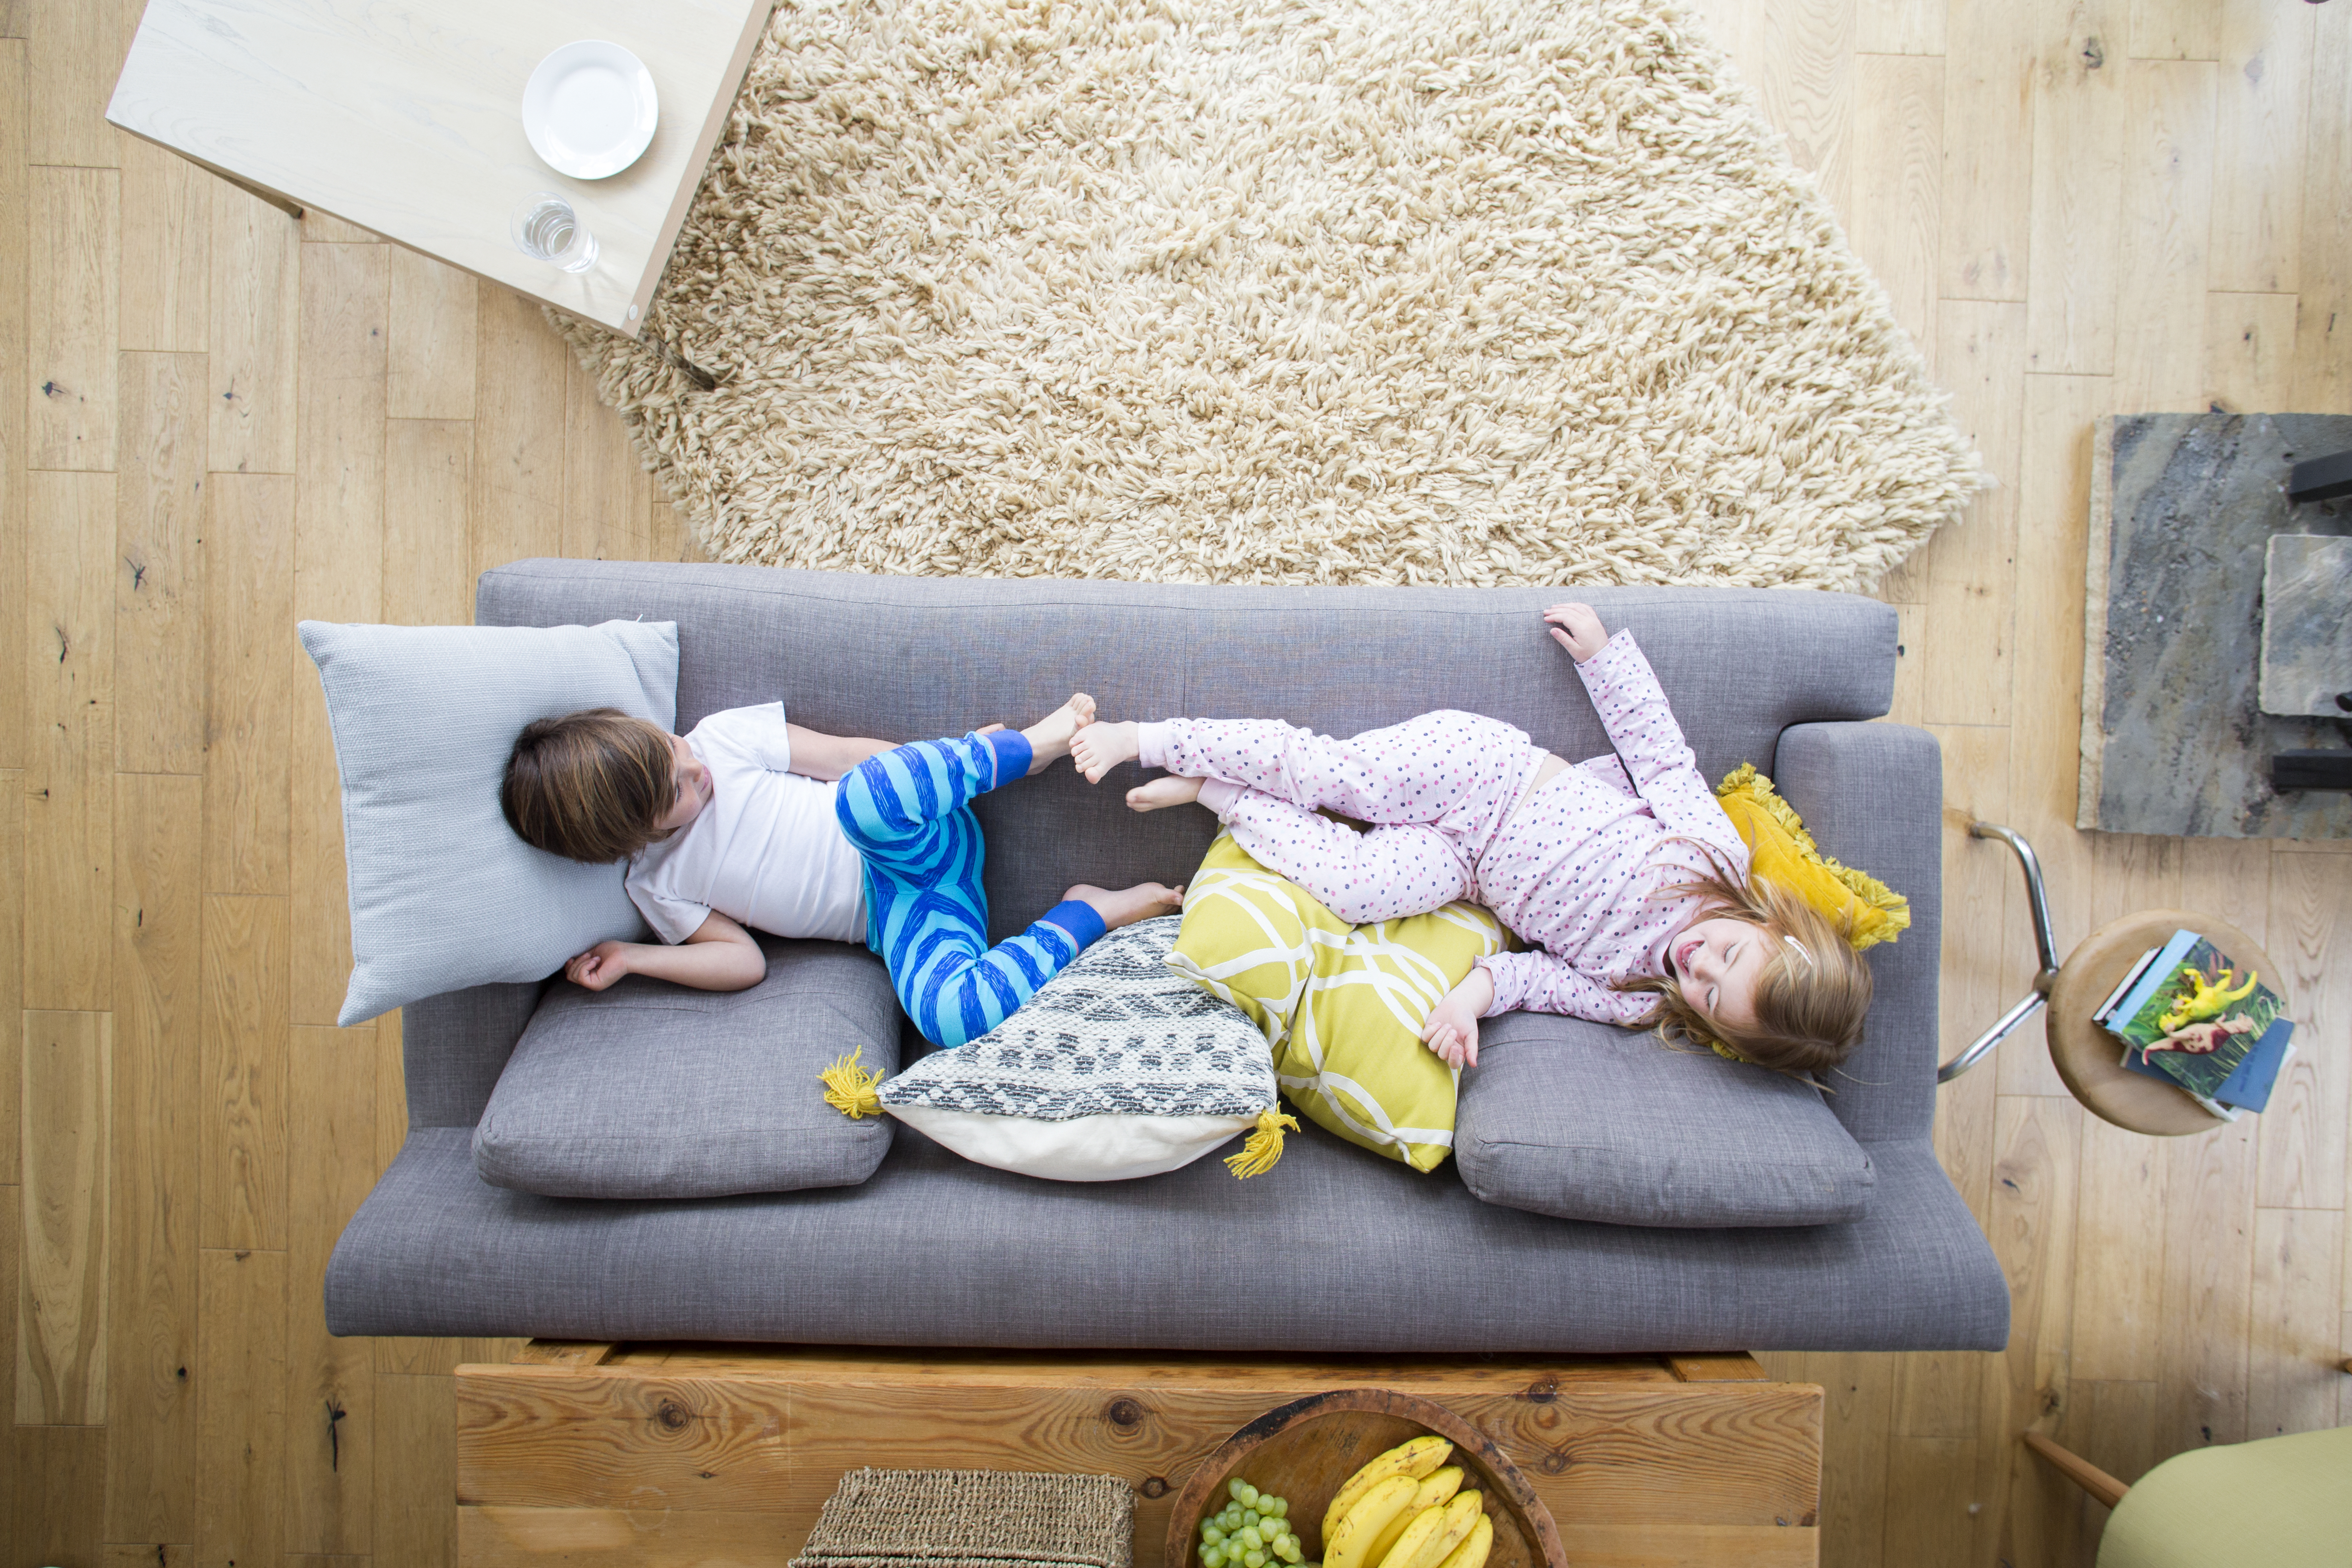 What Is the Difference Between a Living Room and a Family Room?